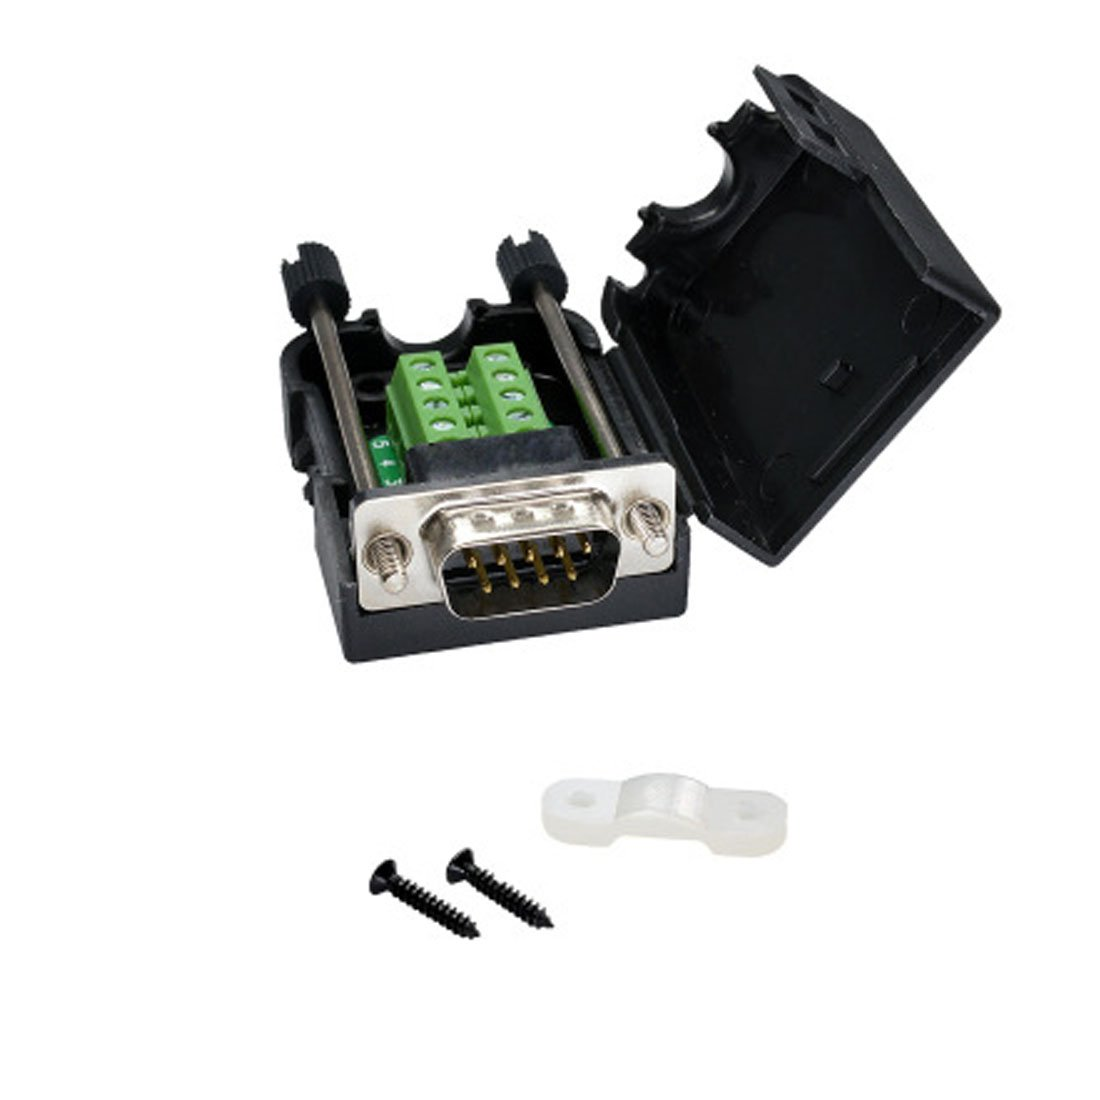 DB9 9-Pin Male Adapter RS232 Serial to 3-Position Terminal Connector with Case (Female Connector, DB9 5+5 with case (B))